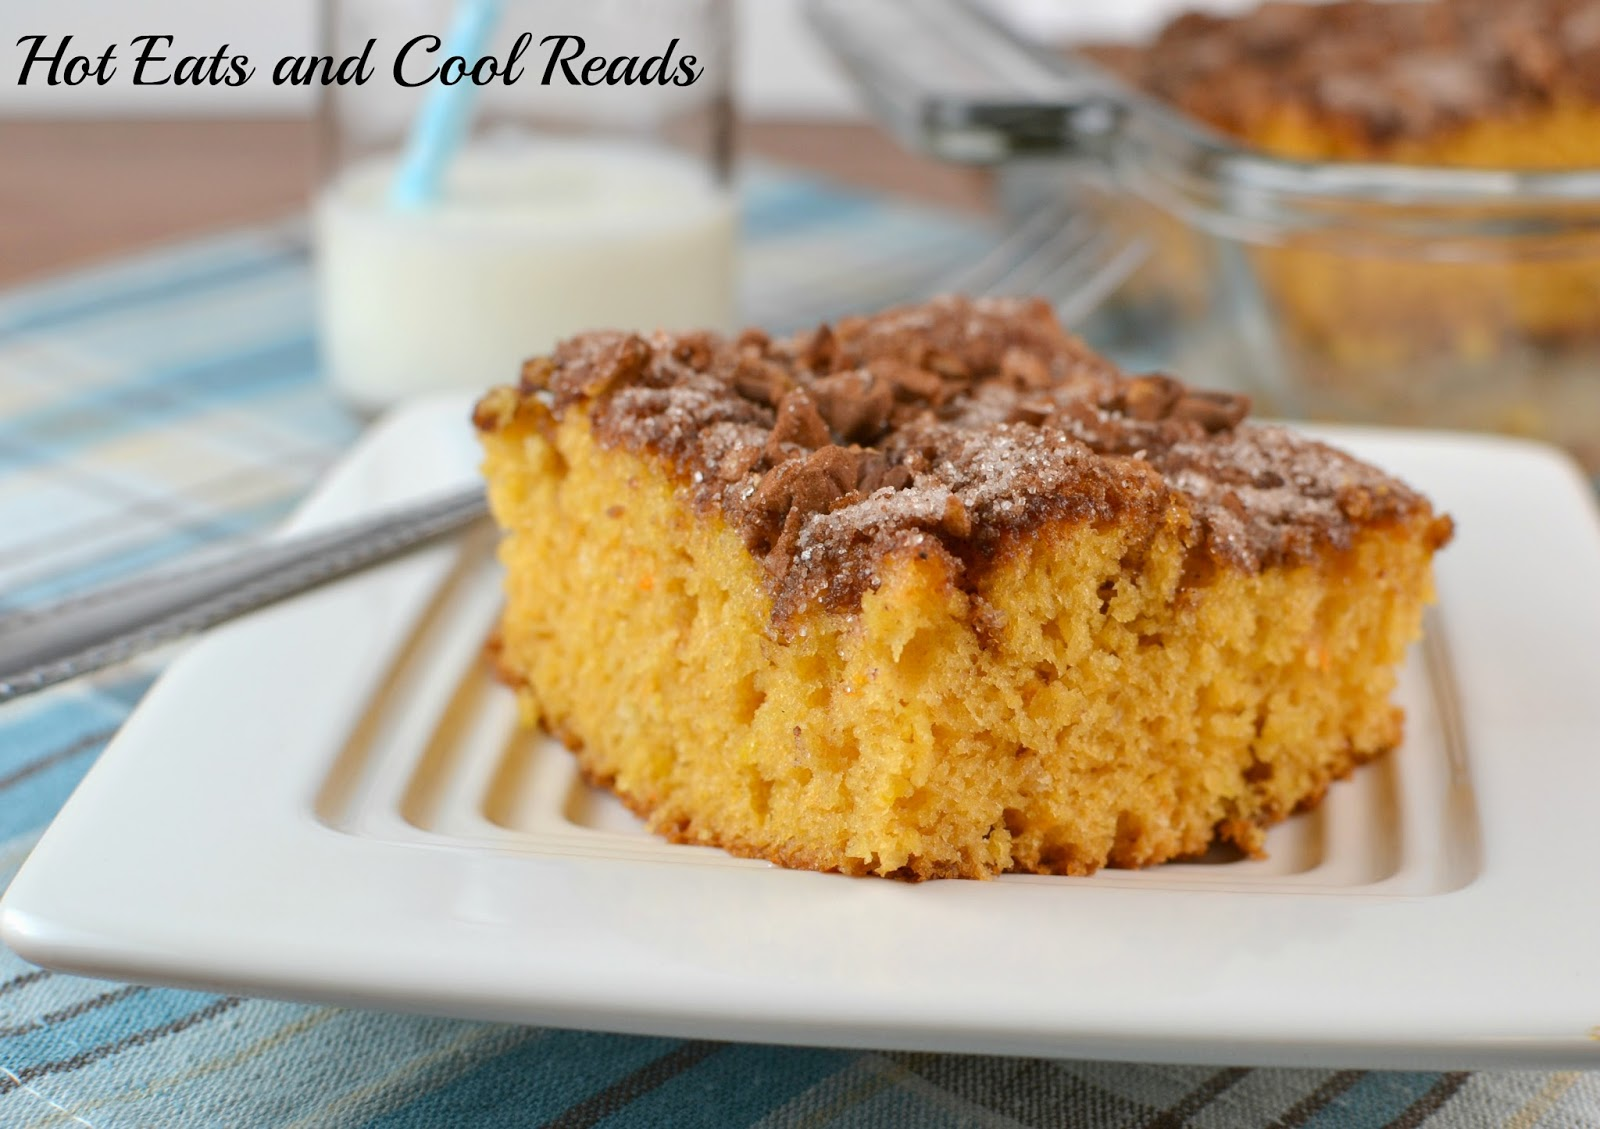 Delicious butterscotch cake with a crunchy, sugary topping! Super easy recipe too! Butterscotch Coffee Cake from Hot Eats and Cool Reads